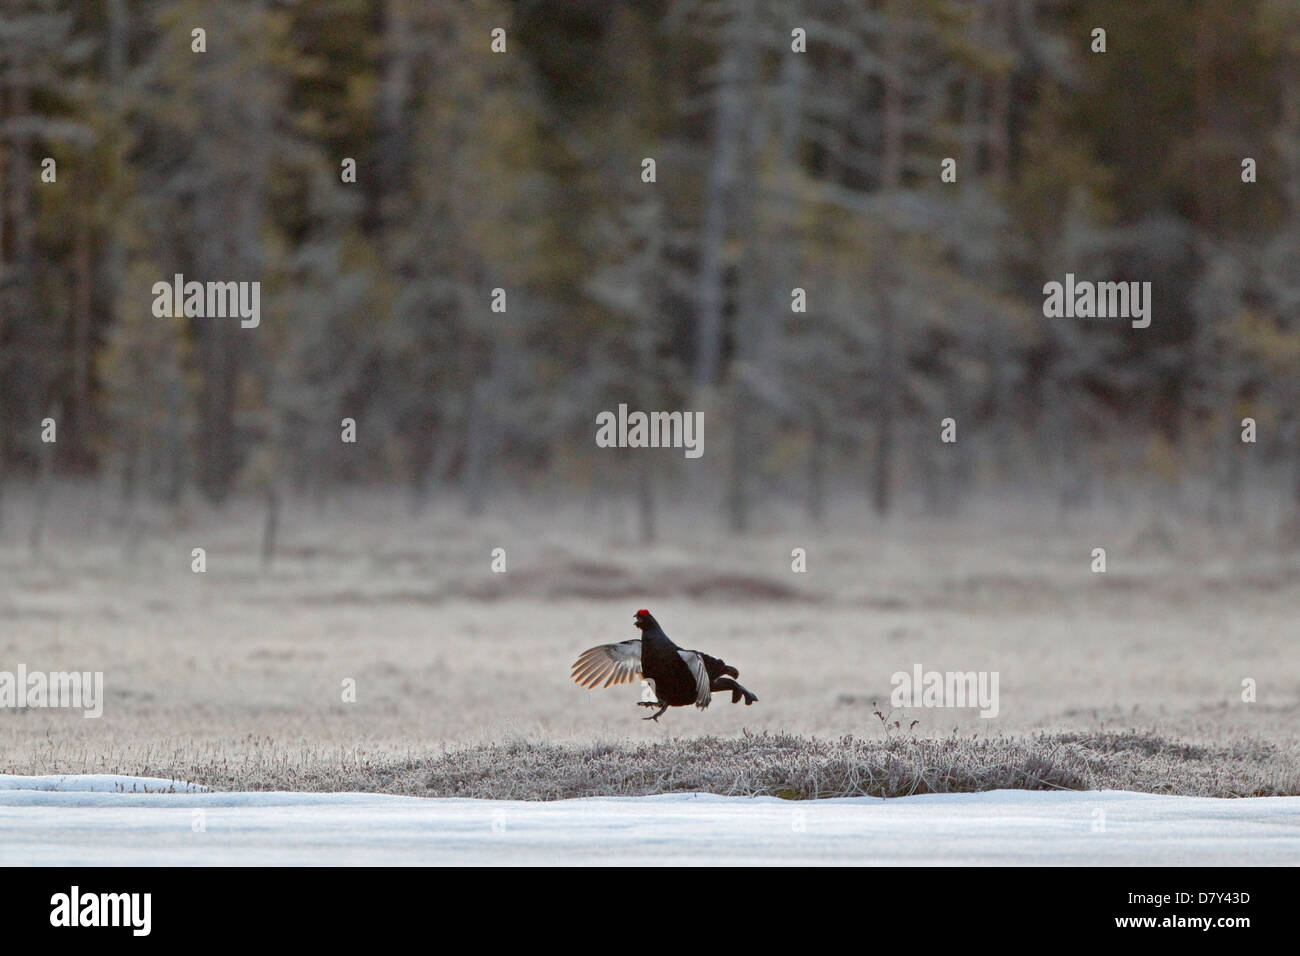 Male Black Grouse jumping at a lek in Finland - Stock Image